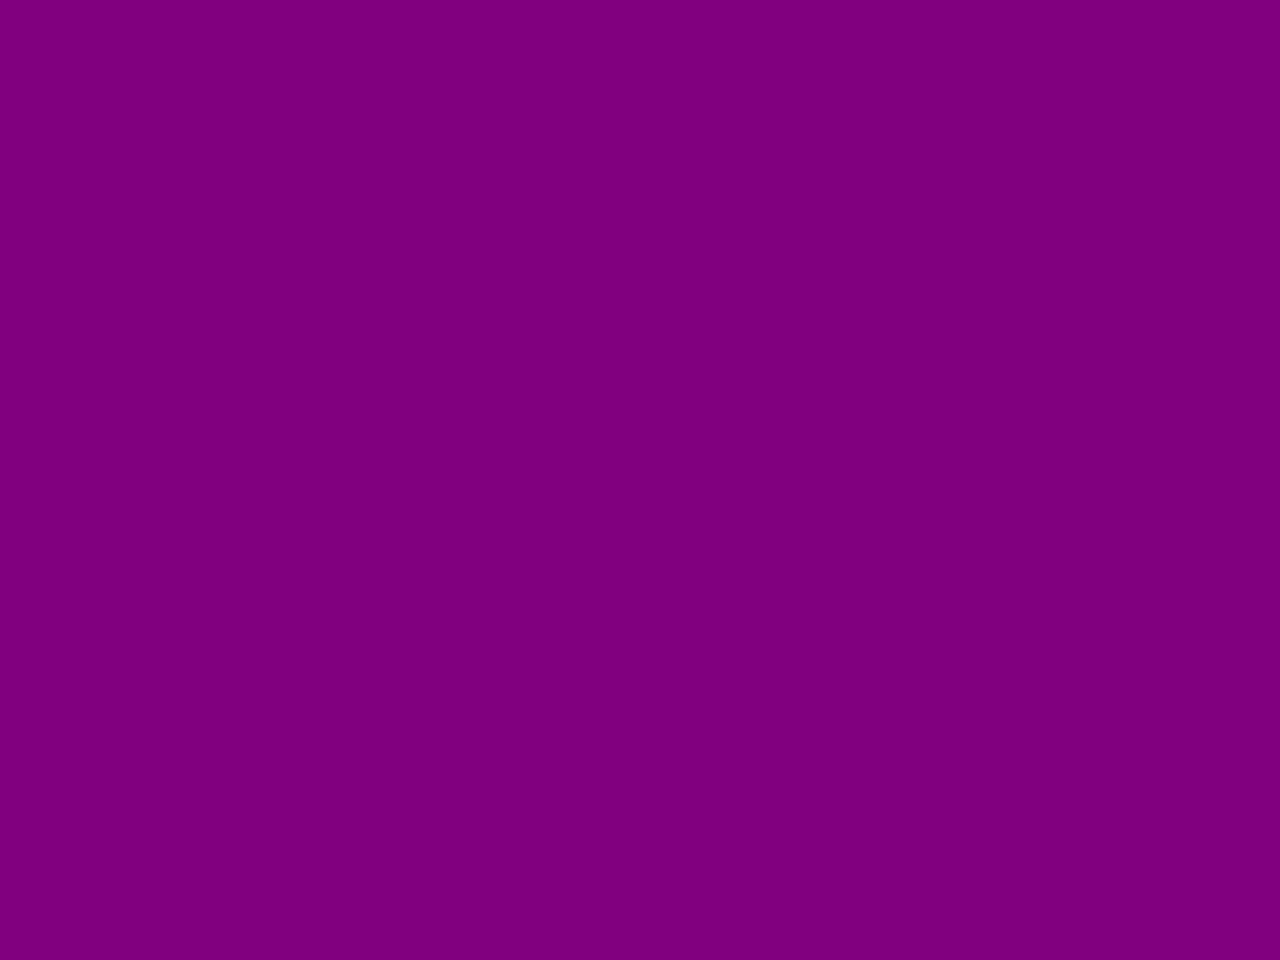 1280x960 Purple Web Solid Color Background